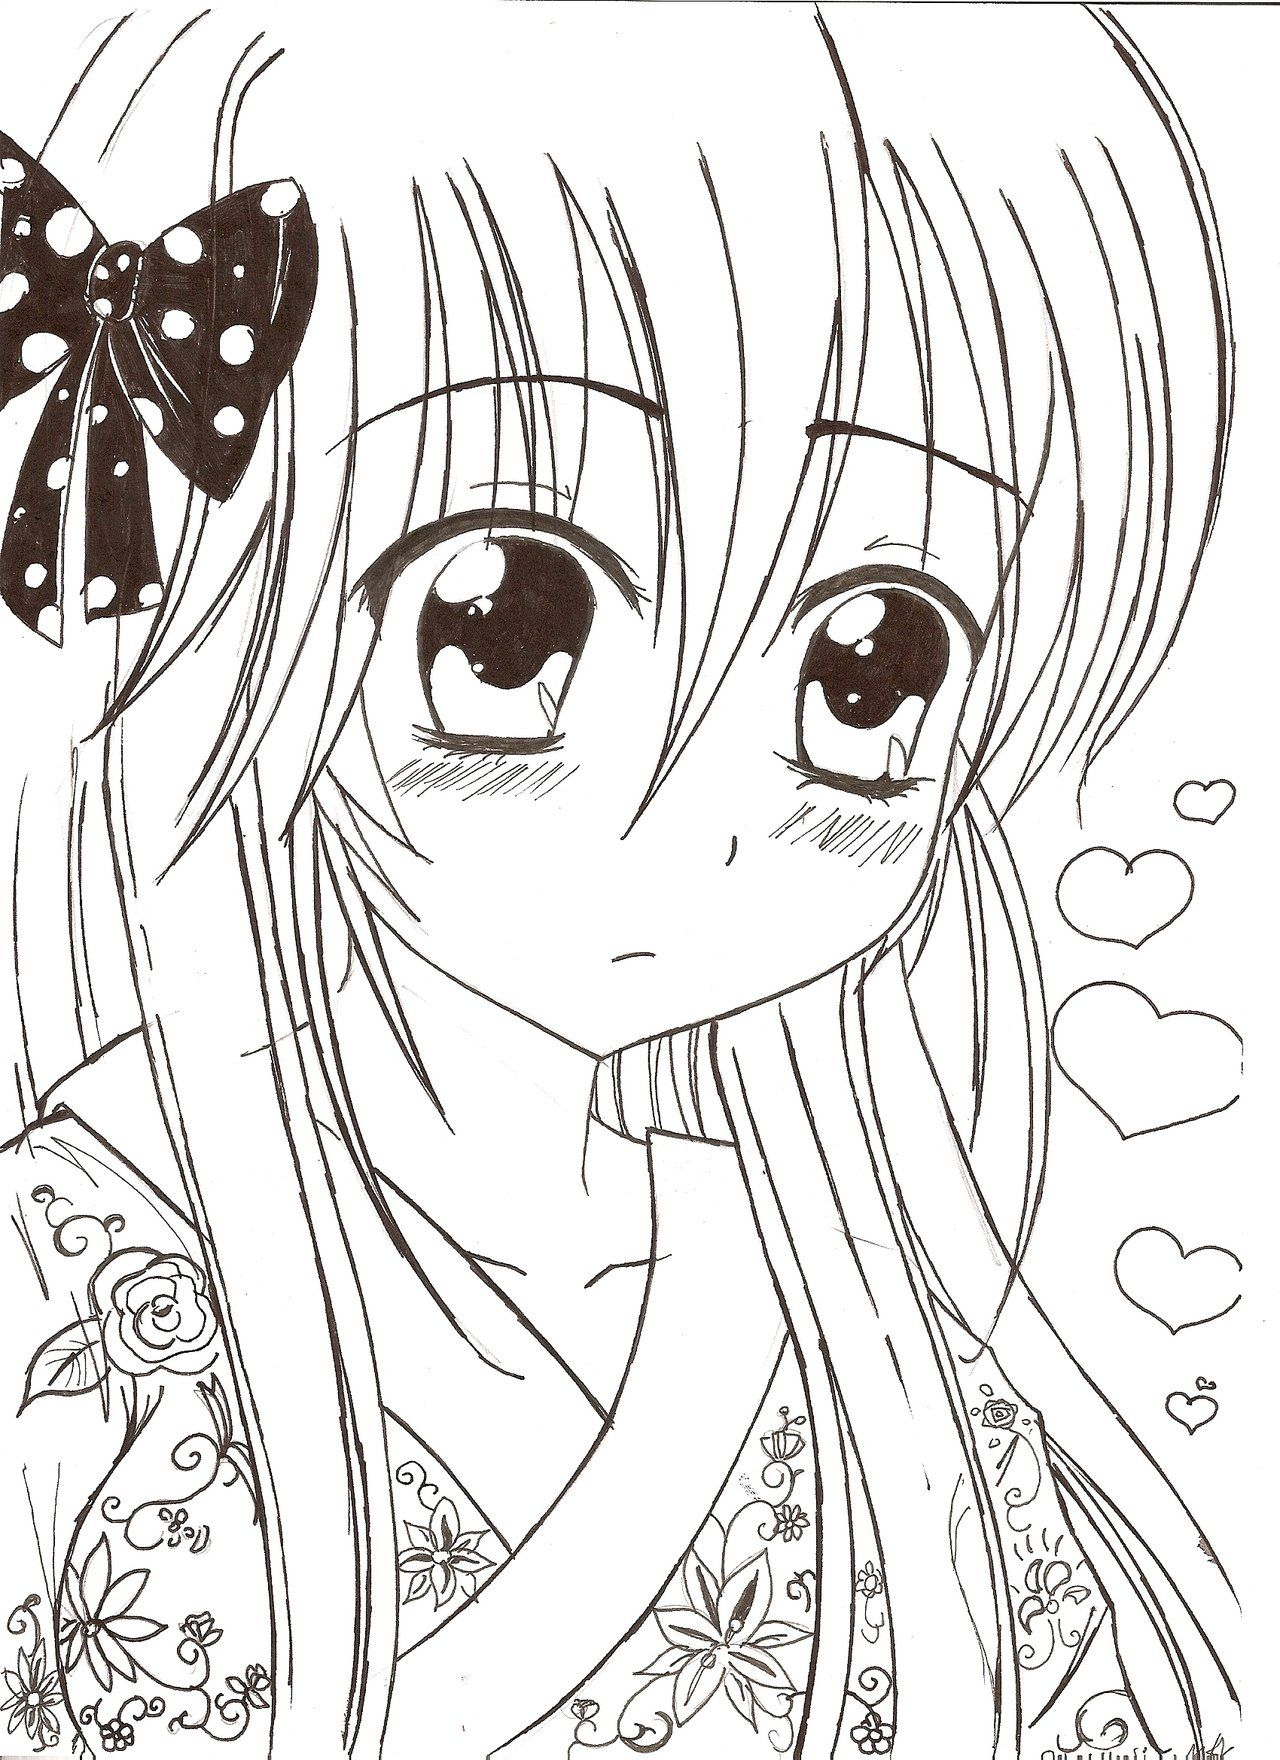 Kawaii Anime Coloring Pages : kawaii, anime, coloring, pages, Anime, Kawaii, Razor-Sensei, DeviantArt, Anime,, Drawing, Books,